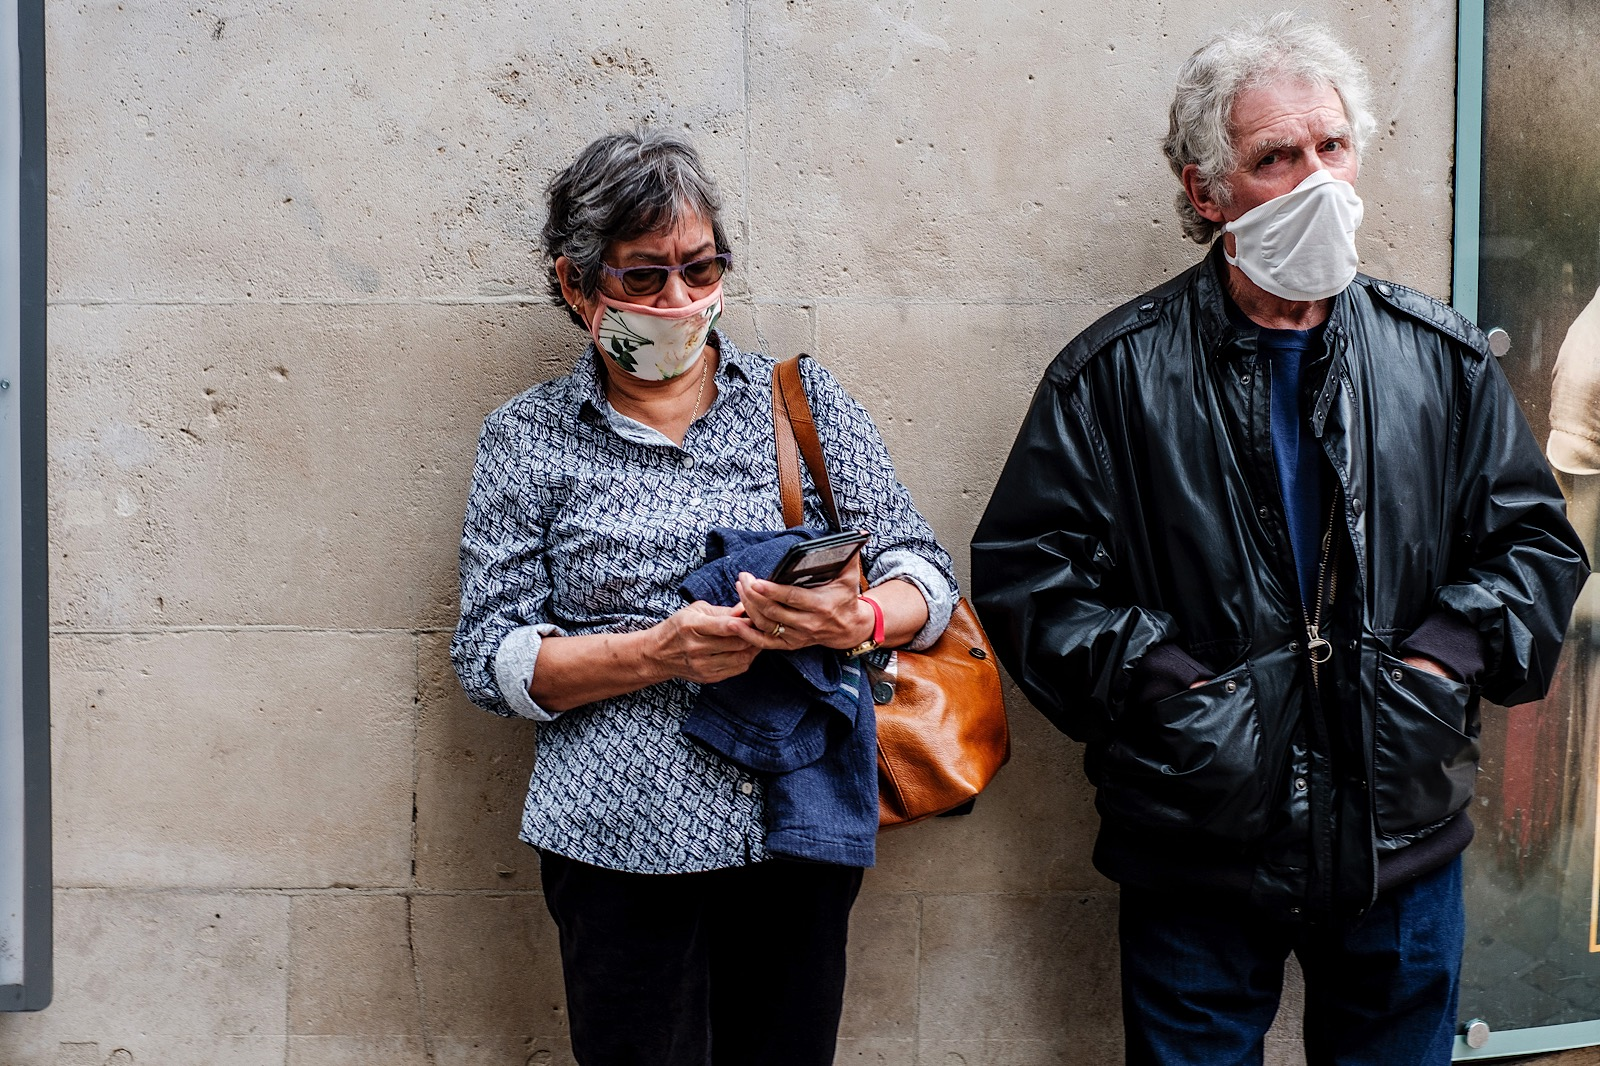 man and woman waiting in line wearing masks